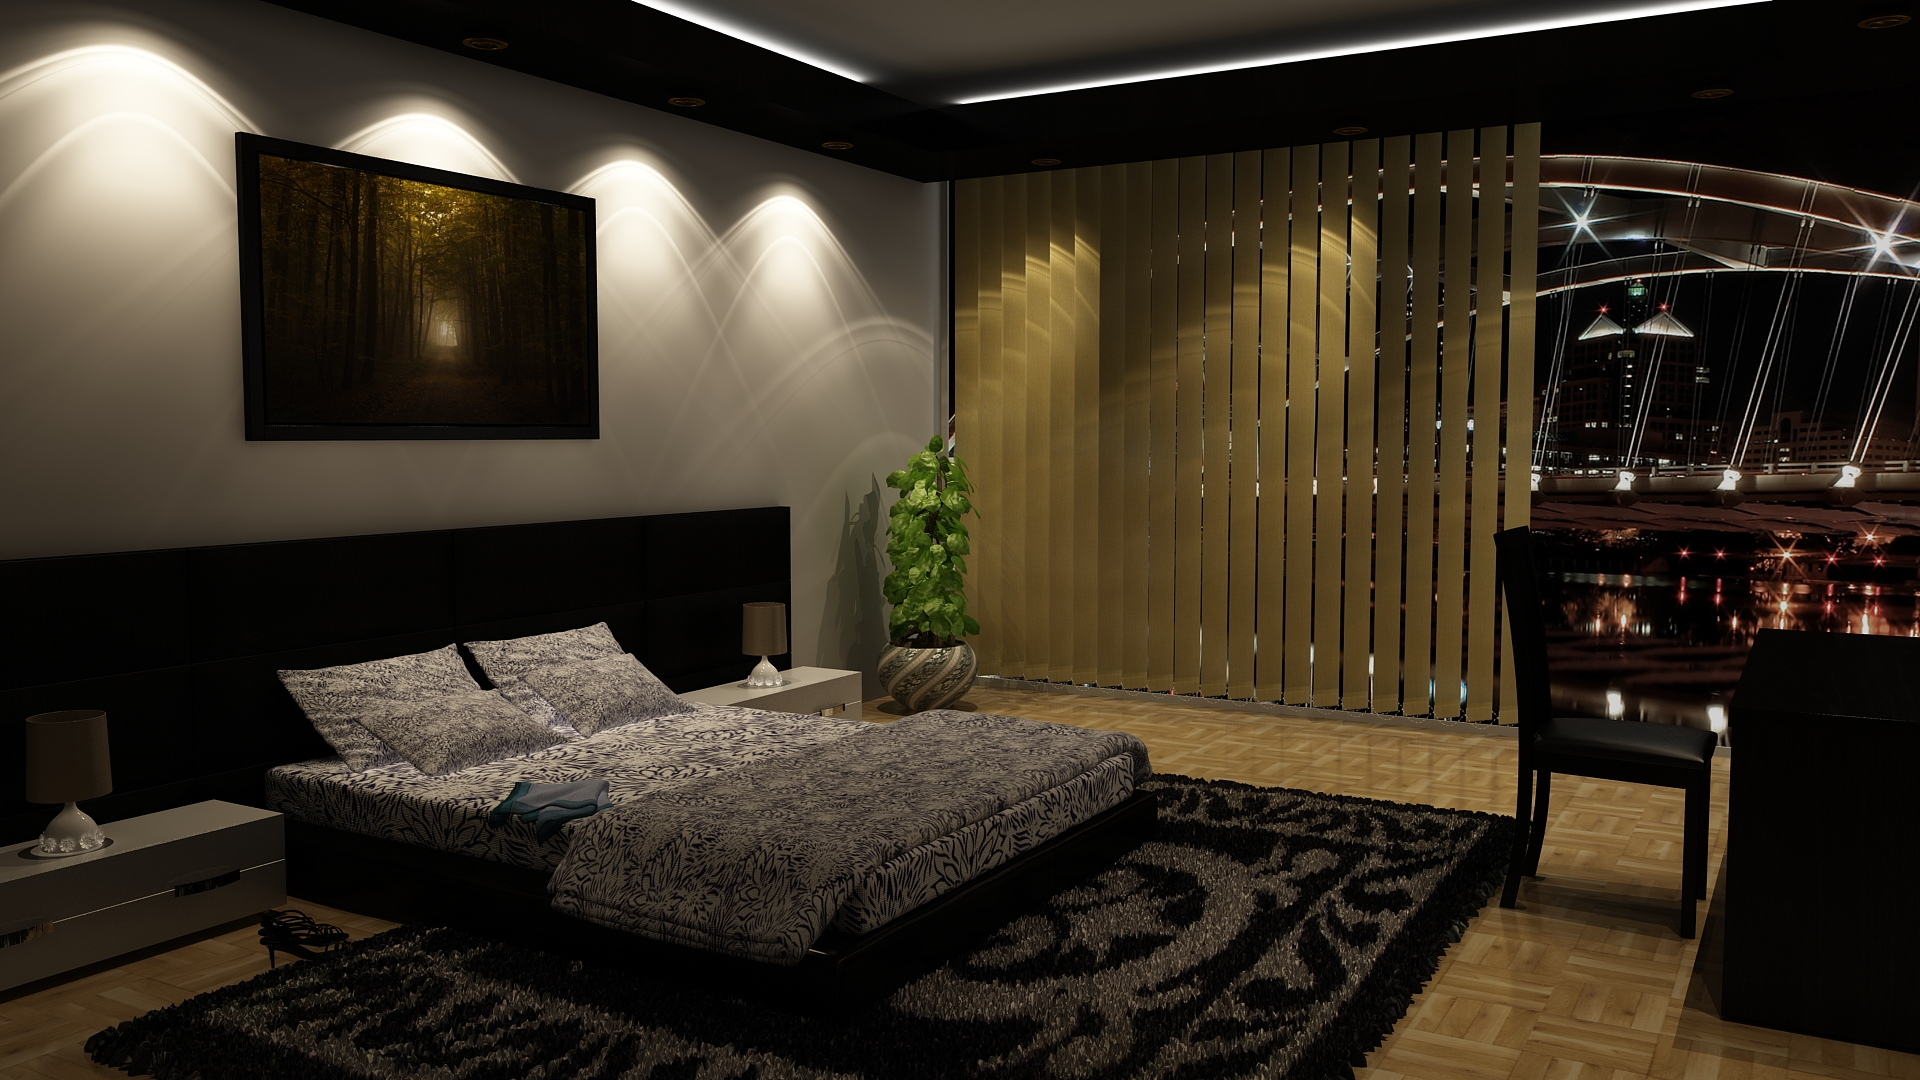 Bedroom night by 3d reality on deviantart for Make a 3d room